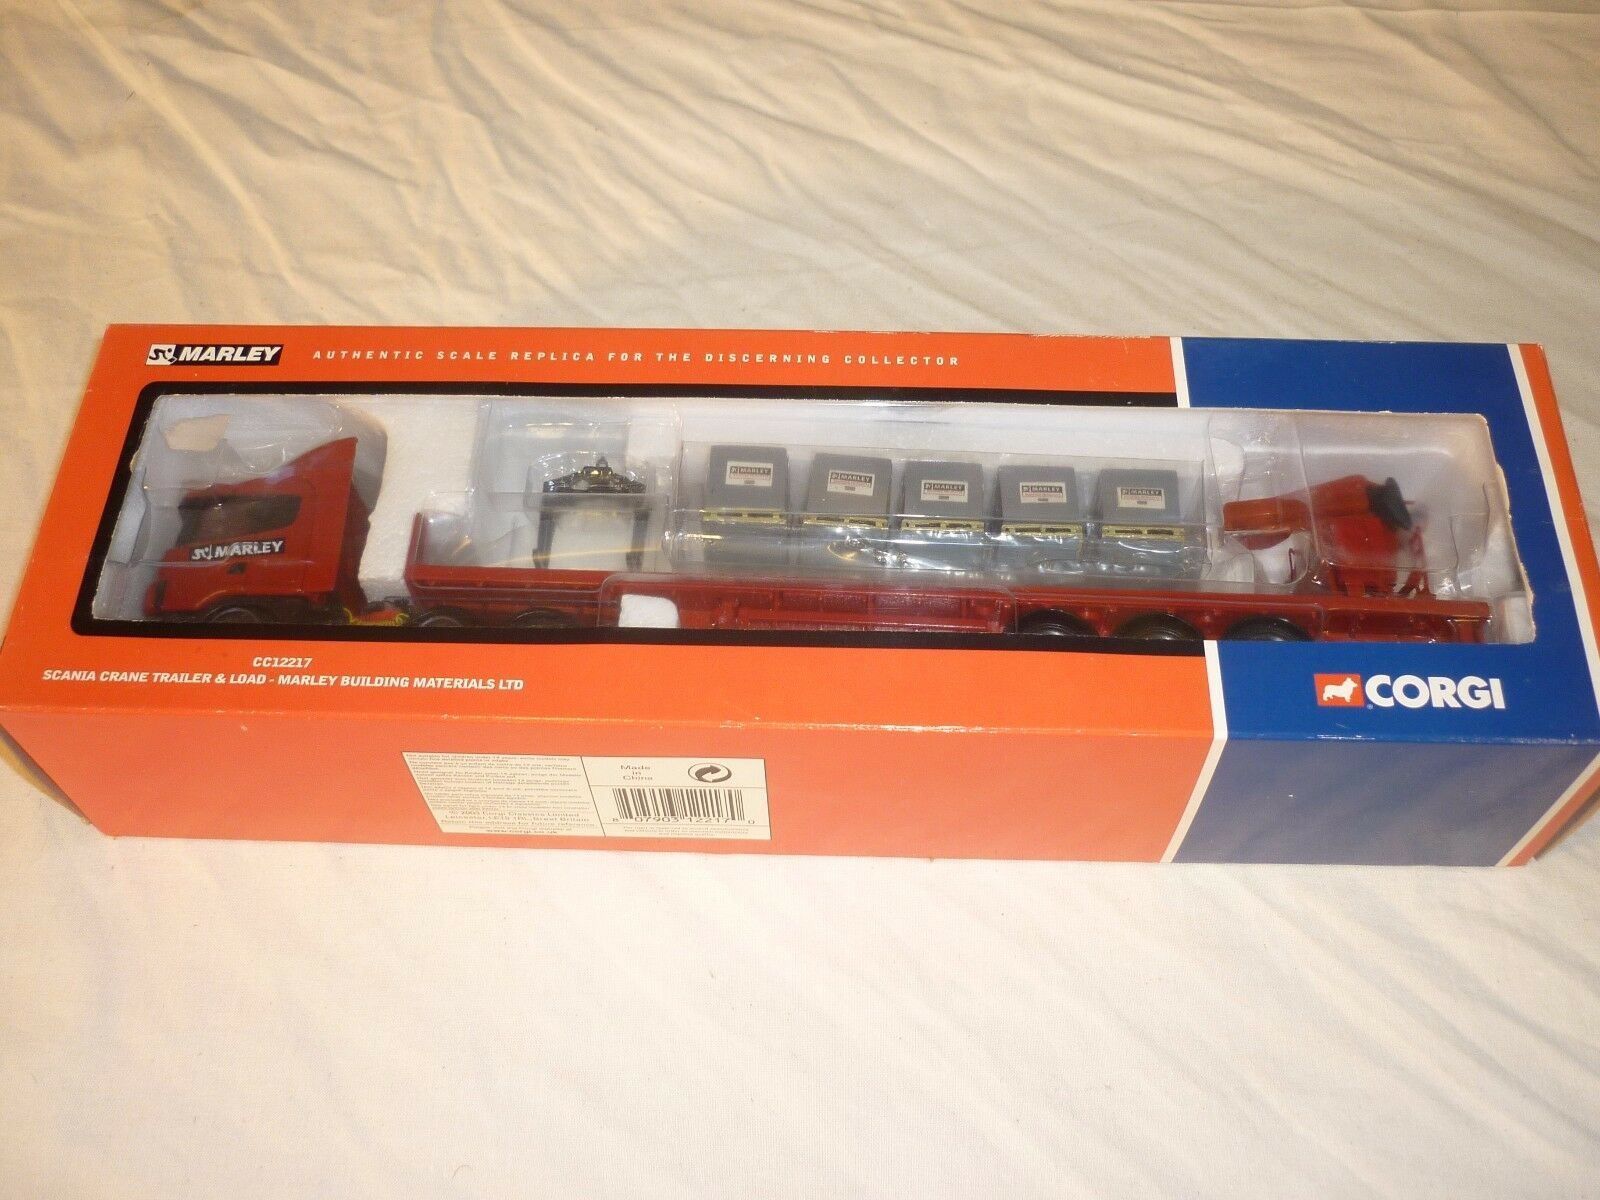 CORGI CC12217, Scania, crane trailer with load, Marley building material.